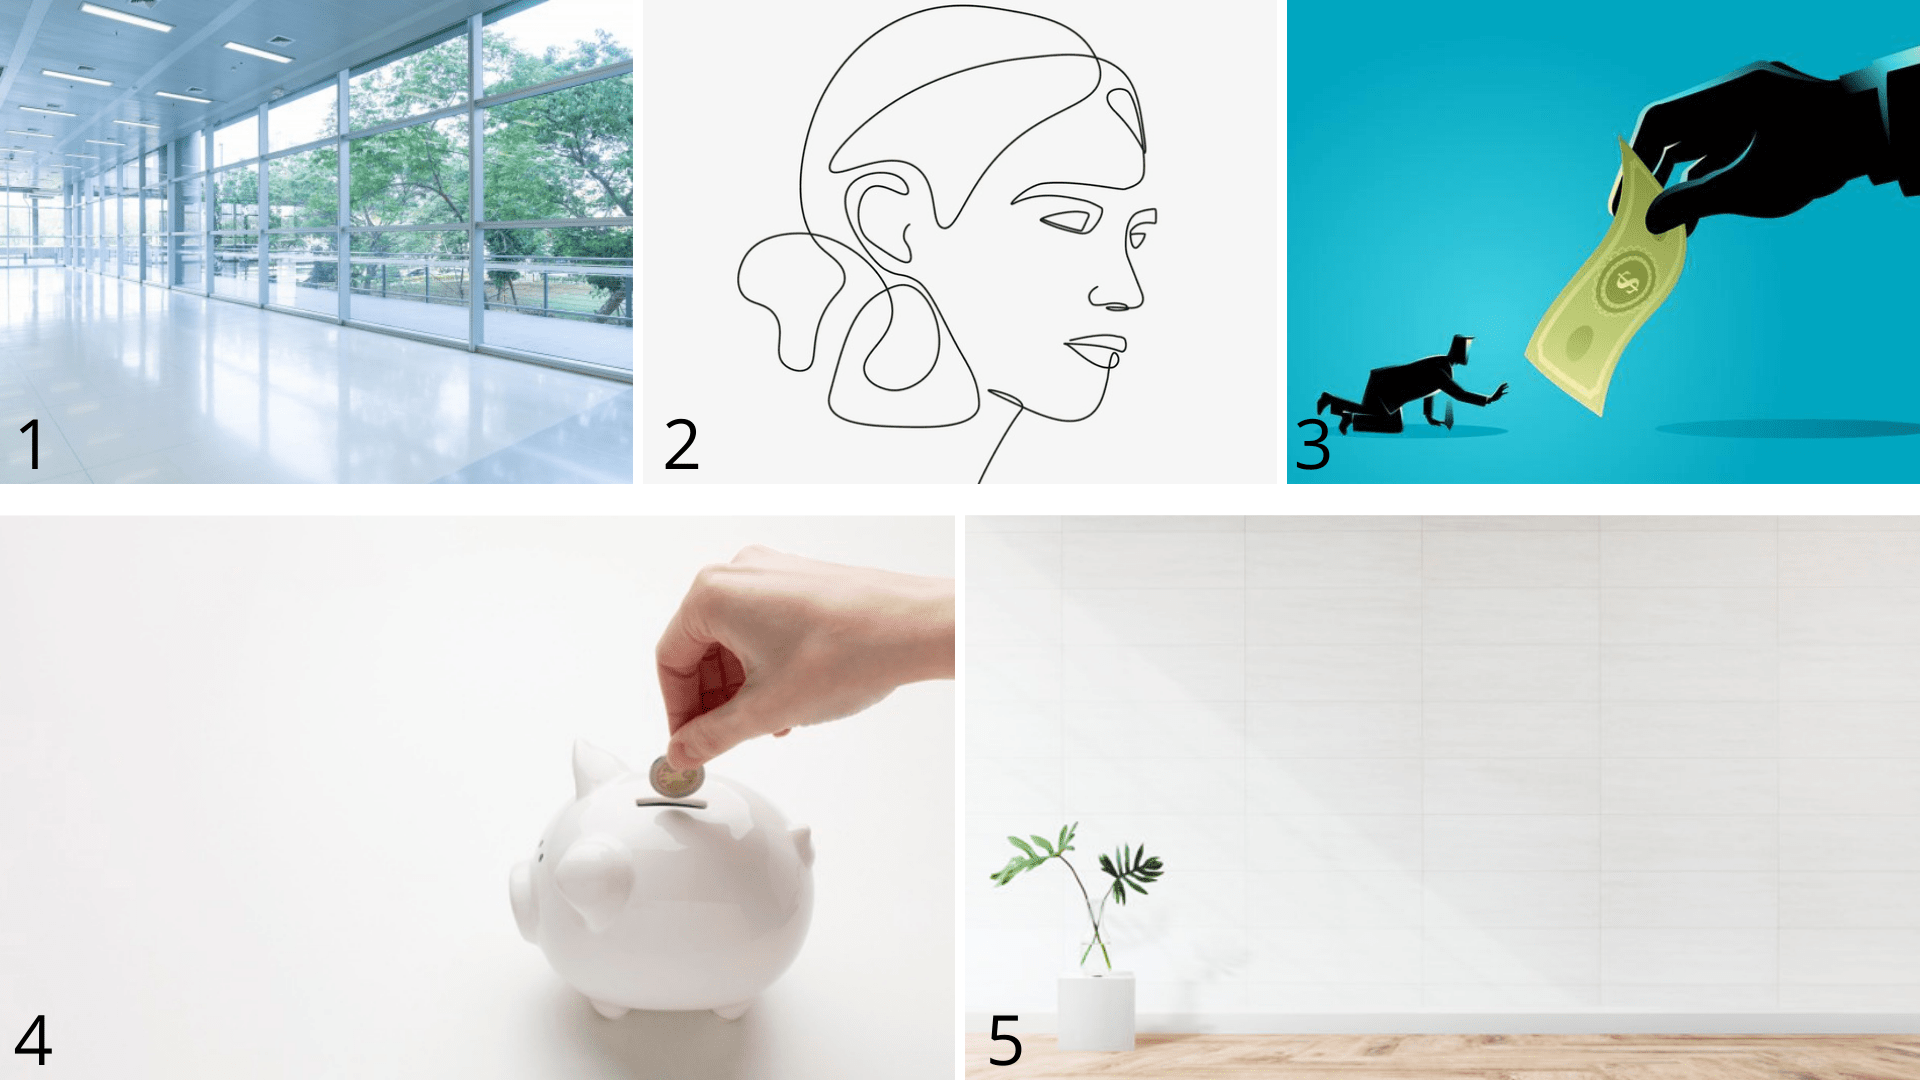 Becoming a minimalist: lesson ideas